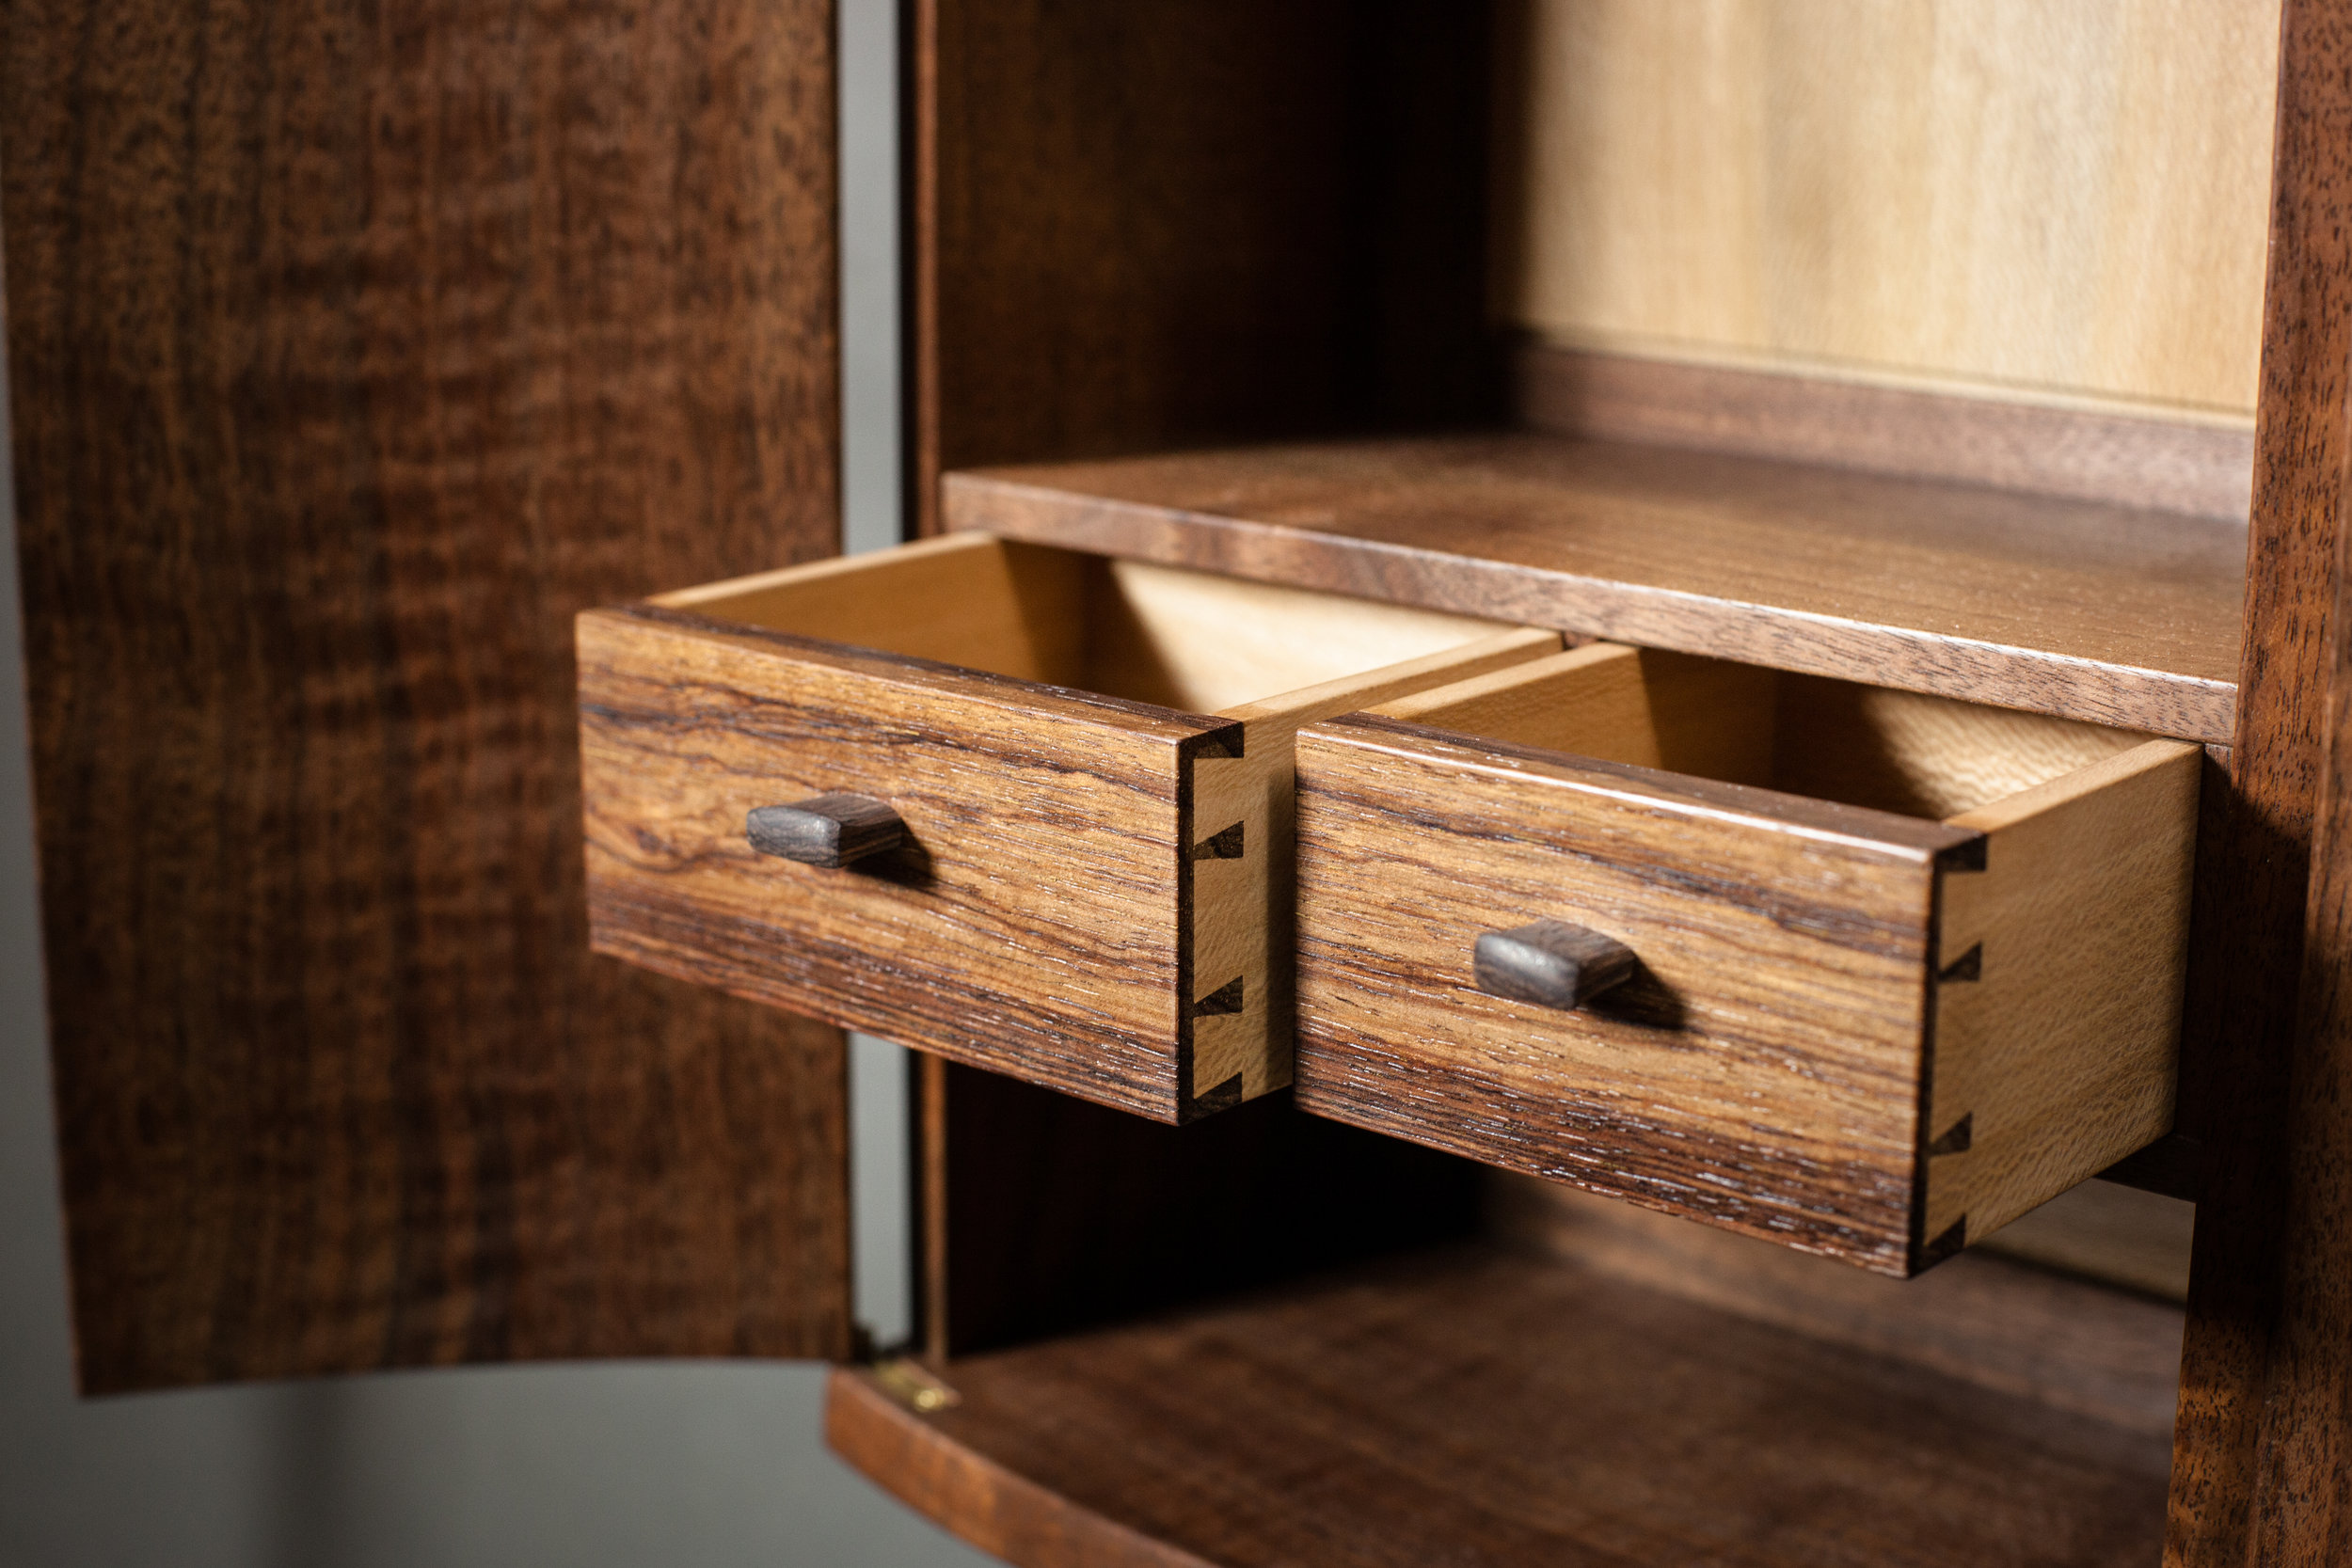 Drawer detail of Upward Spiral Cabinet by  Tim Andries   Photography by Tim Andries